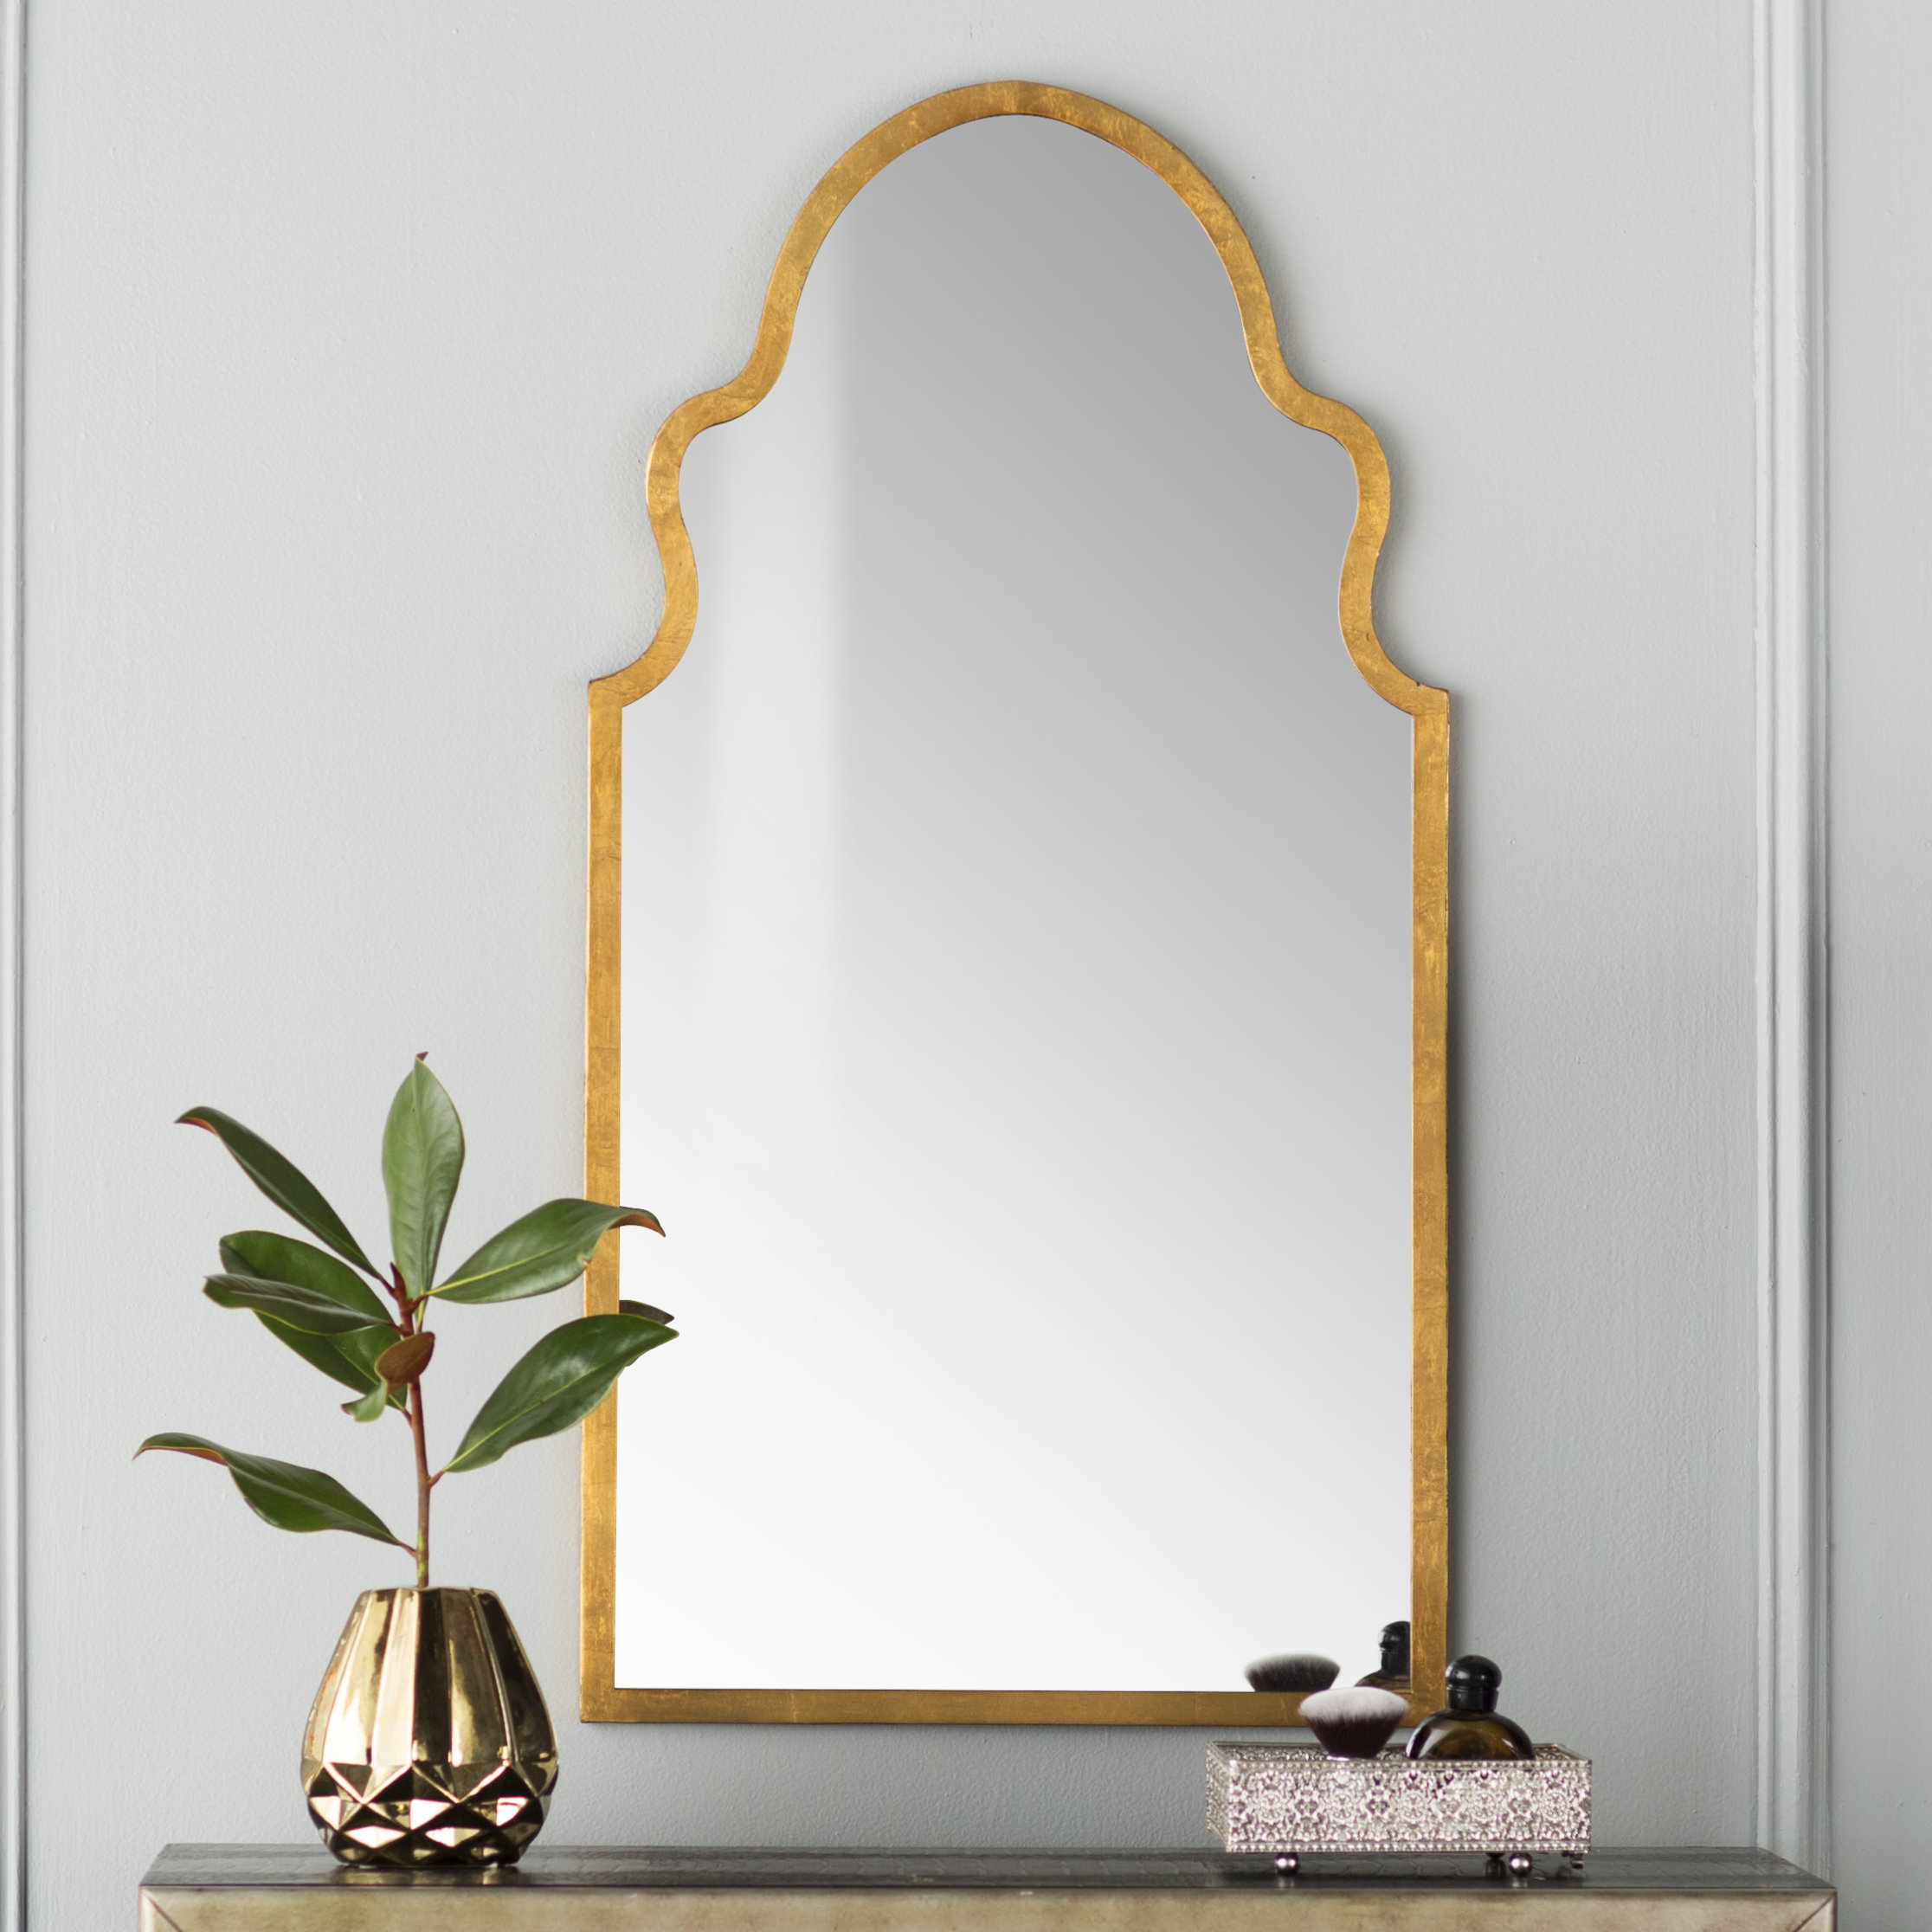 Lincoln Wall Mirror Regarding Fifi Contemporary Arch Wall Mirrors (View 17 of 30)